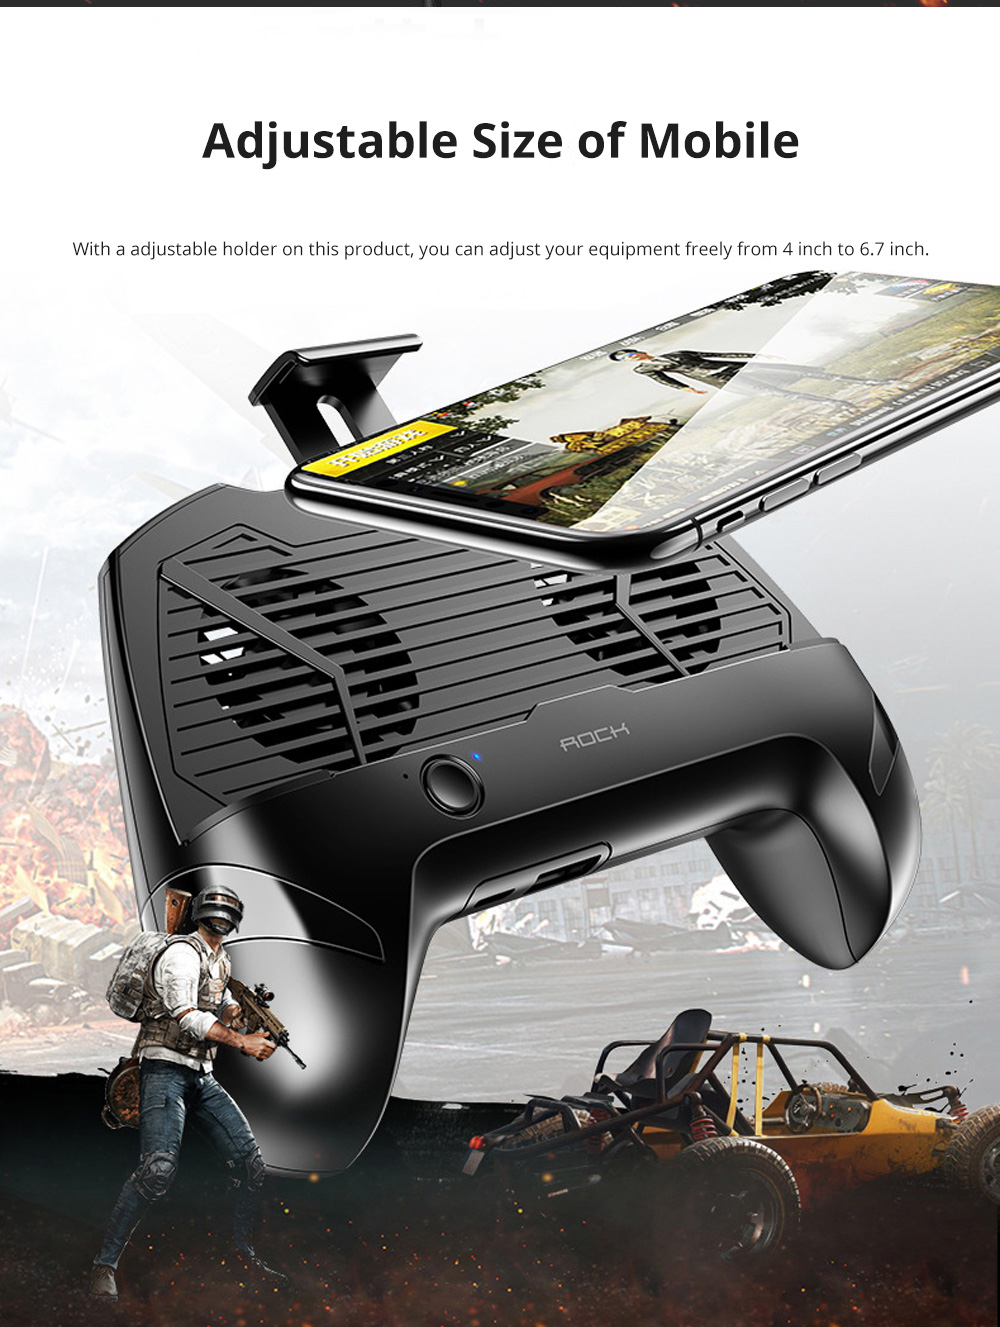 ROCK Multiple Functional Radiator Thermal Dissipation Cellphone Holder with Two Large Fans For Shooting Games 5